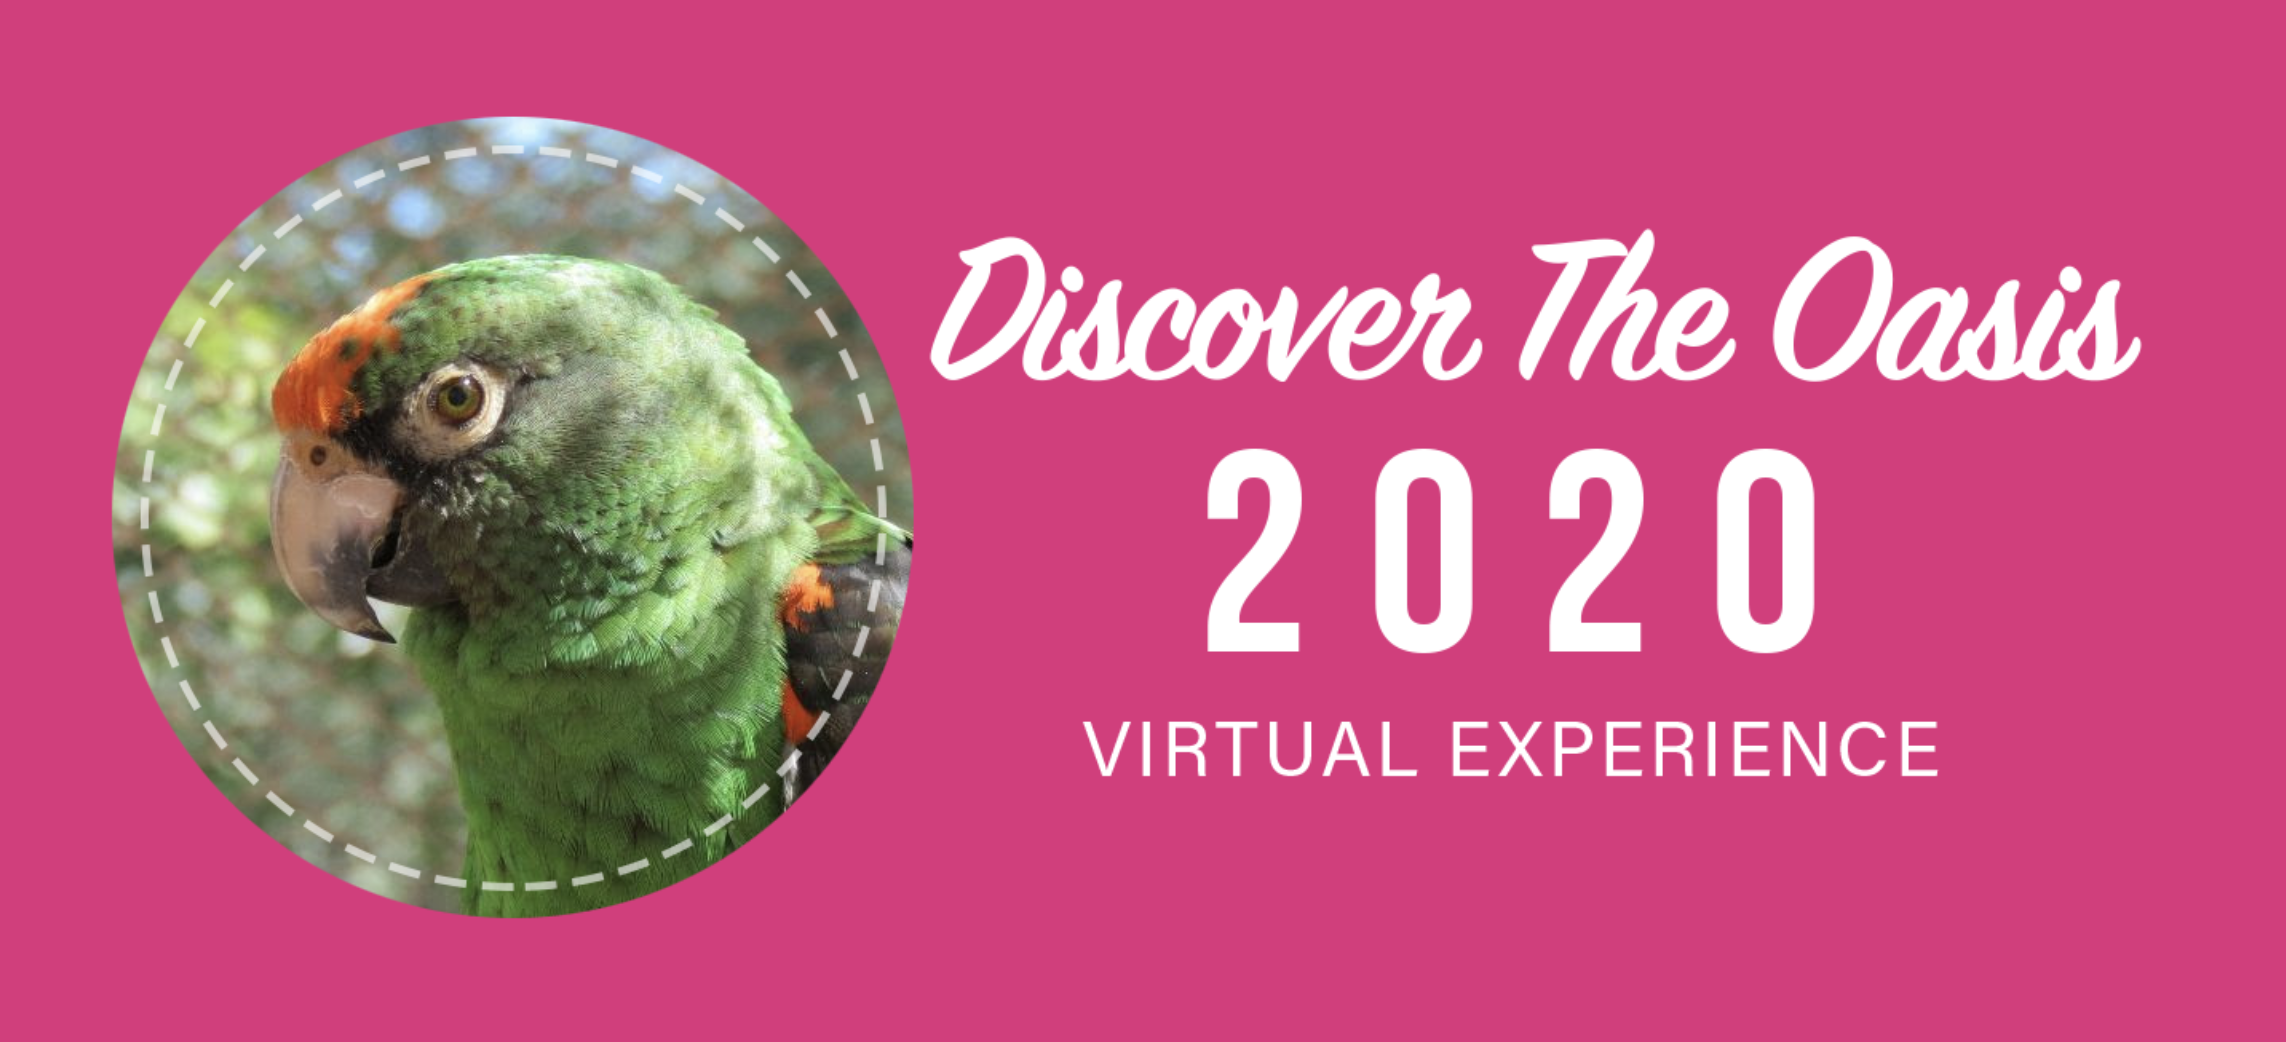 Discover The Oasis 2020 Virtual Experience